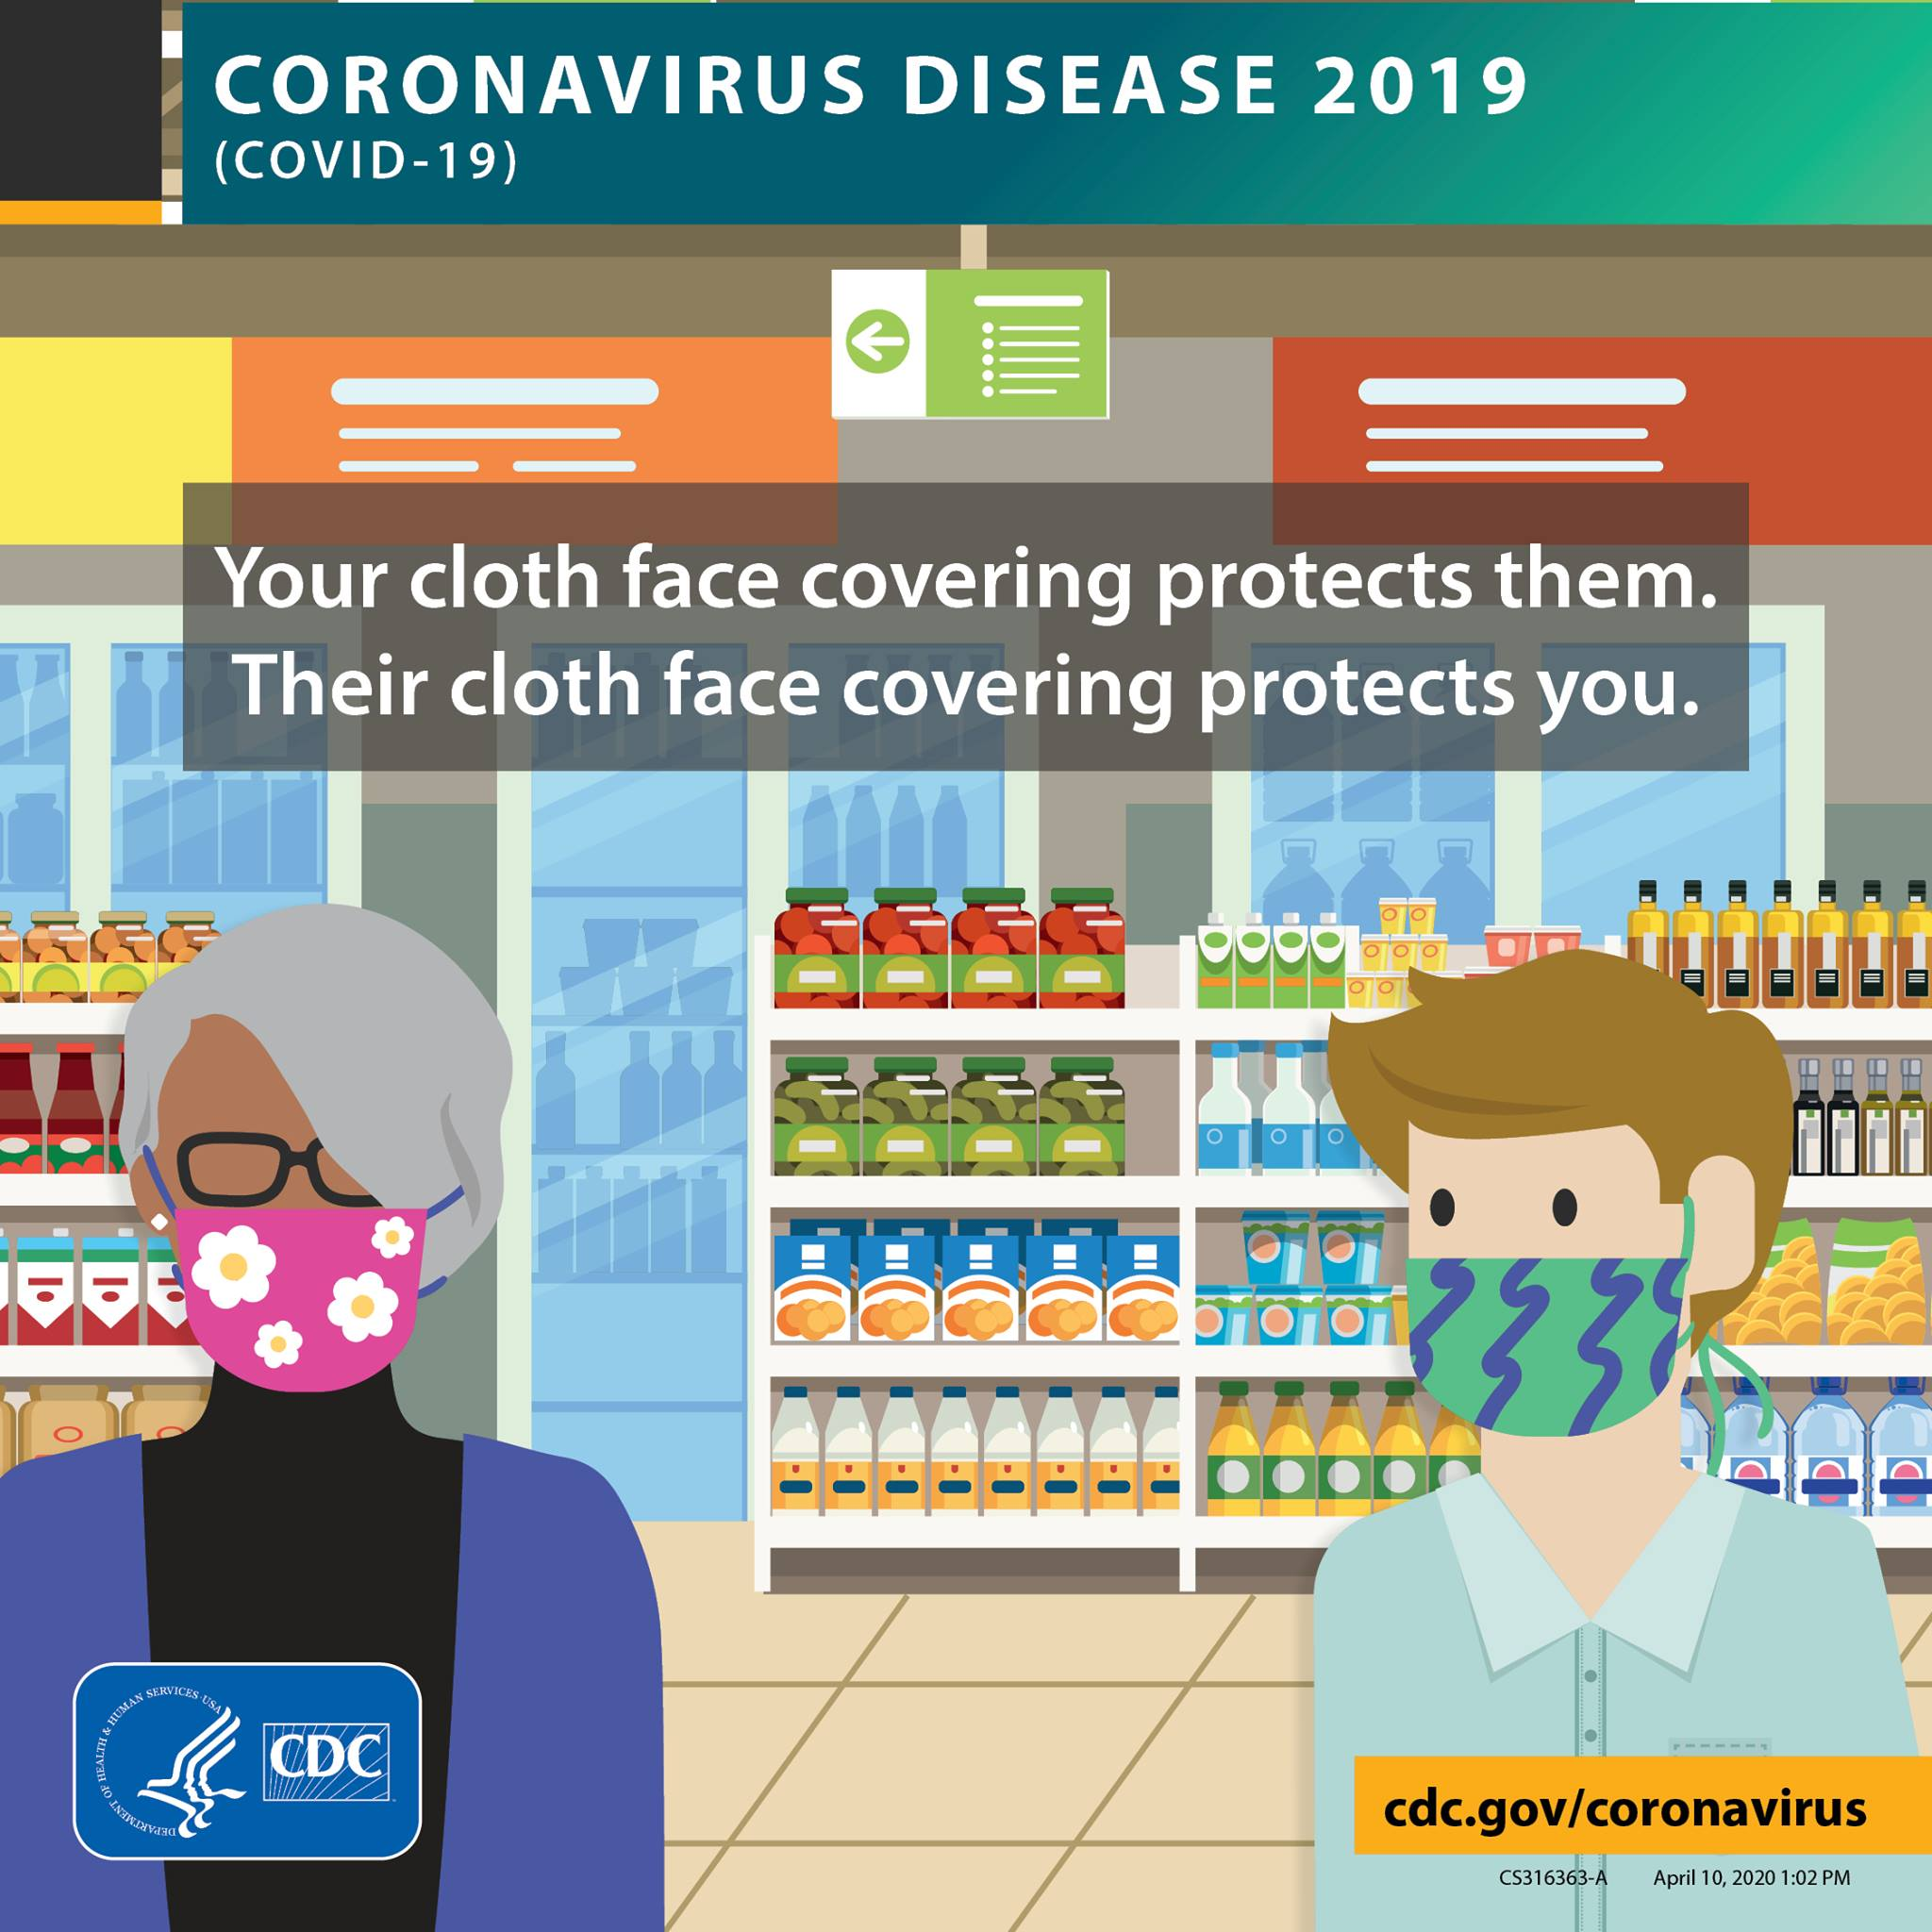 cdc wear masks